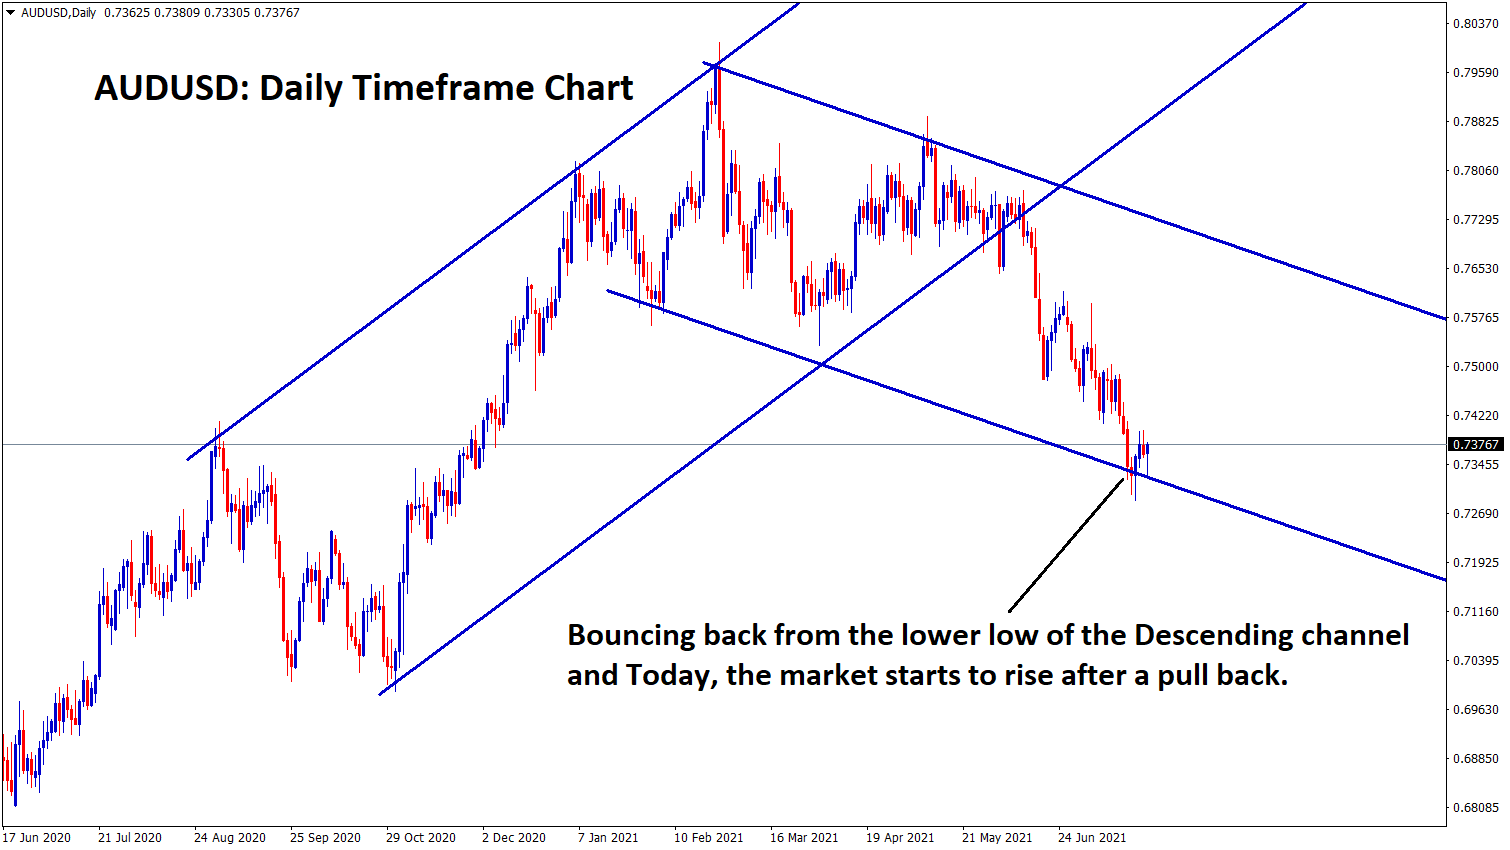 AUDUSD is bouncing back from the lower low of the descending channel and market starts to rise after a pull back